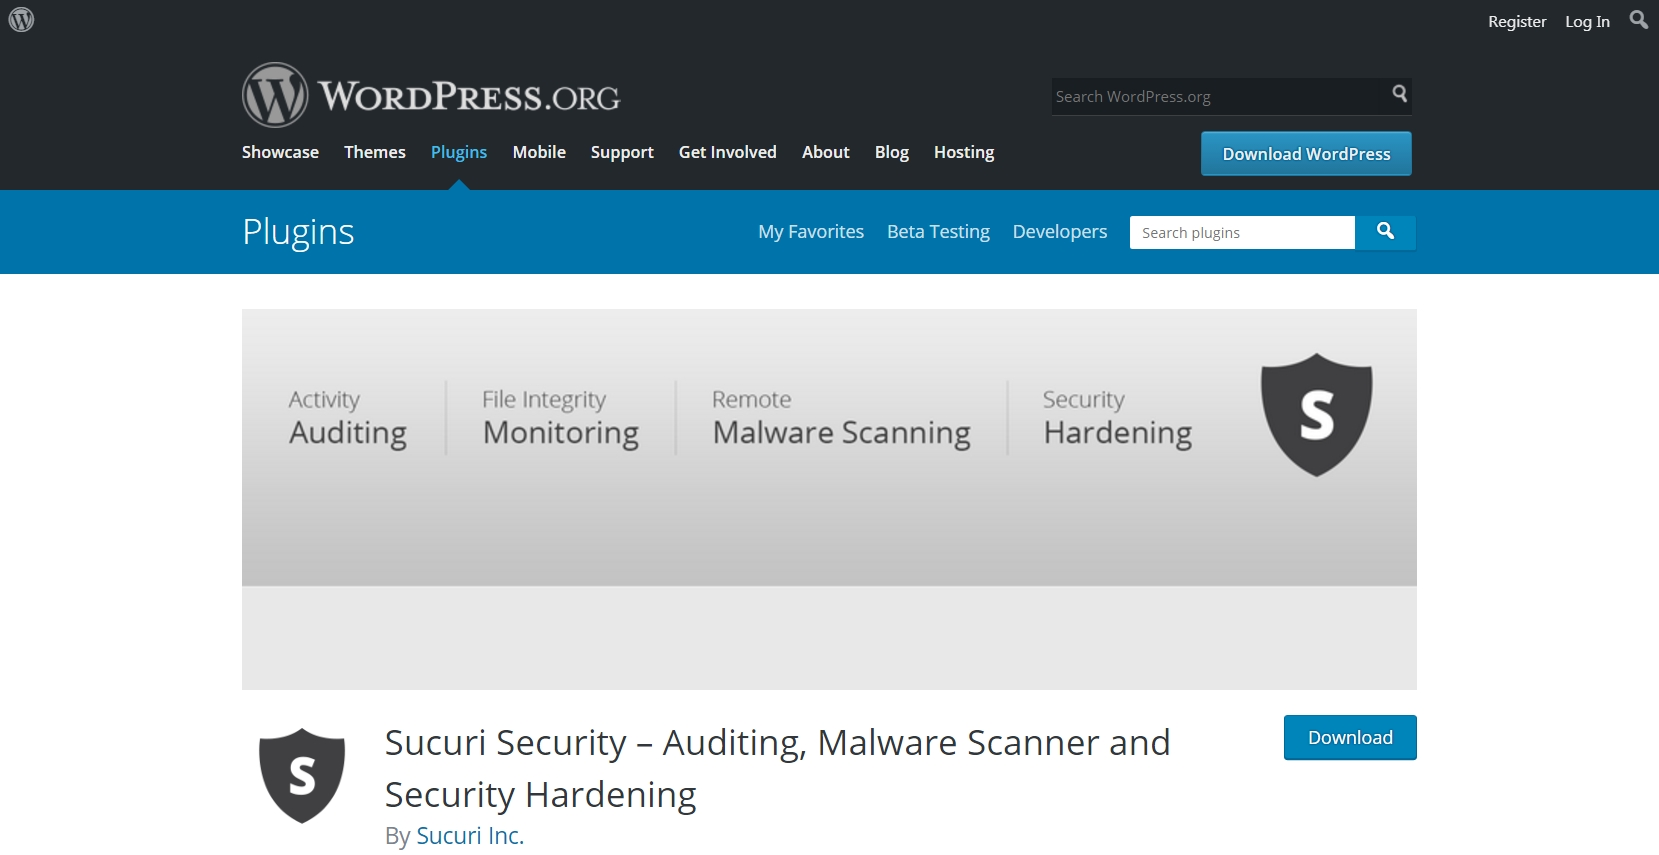 The Ultimate WordPress Security Guide - Make Your Site Hackproof ...